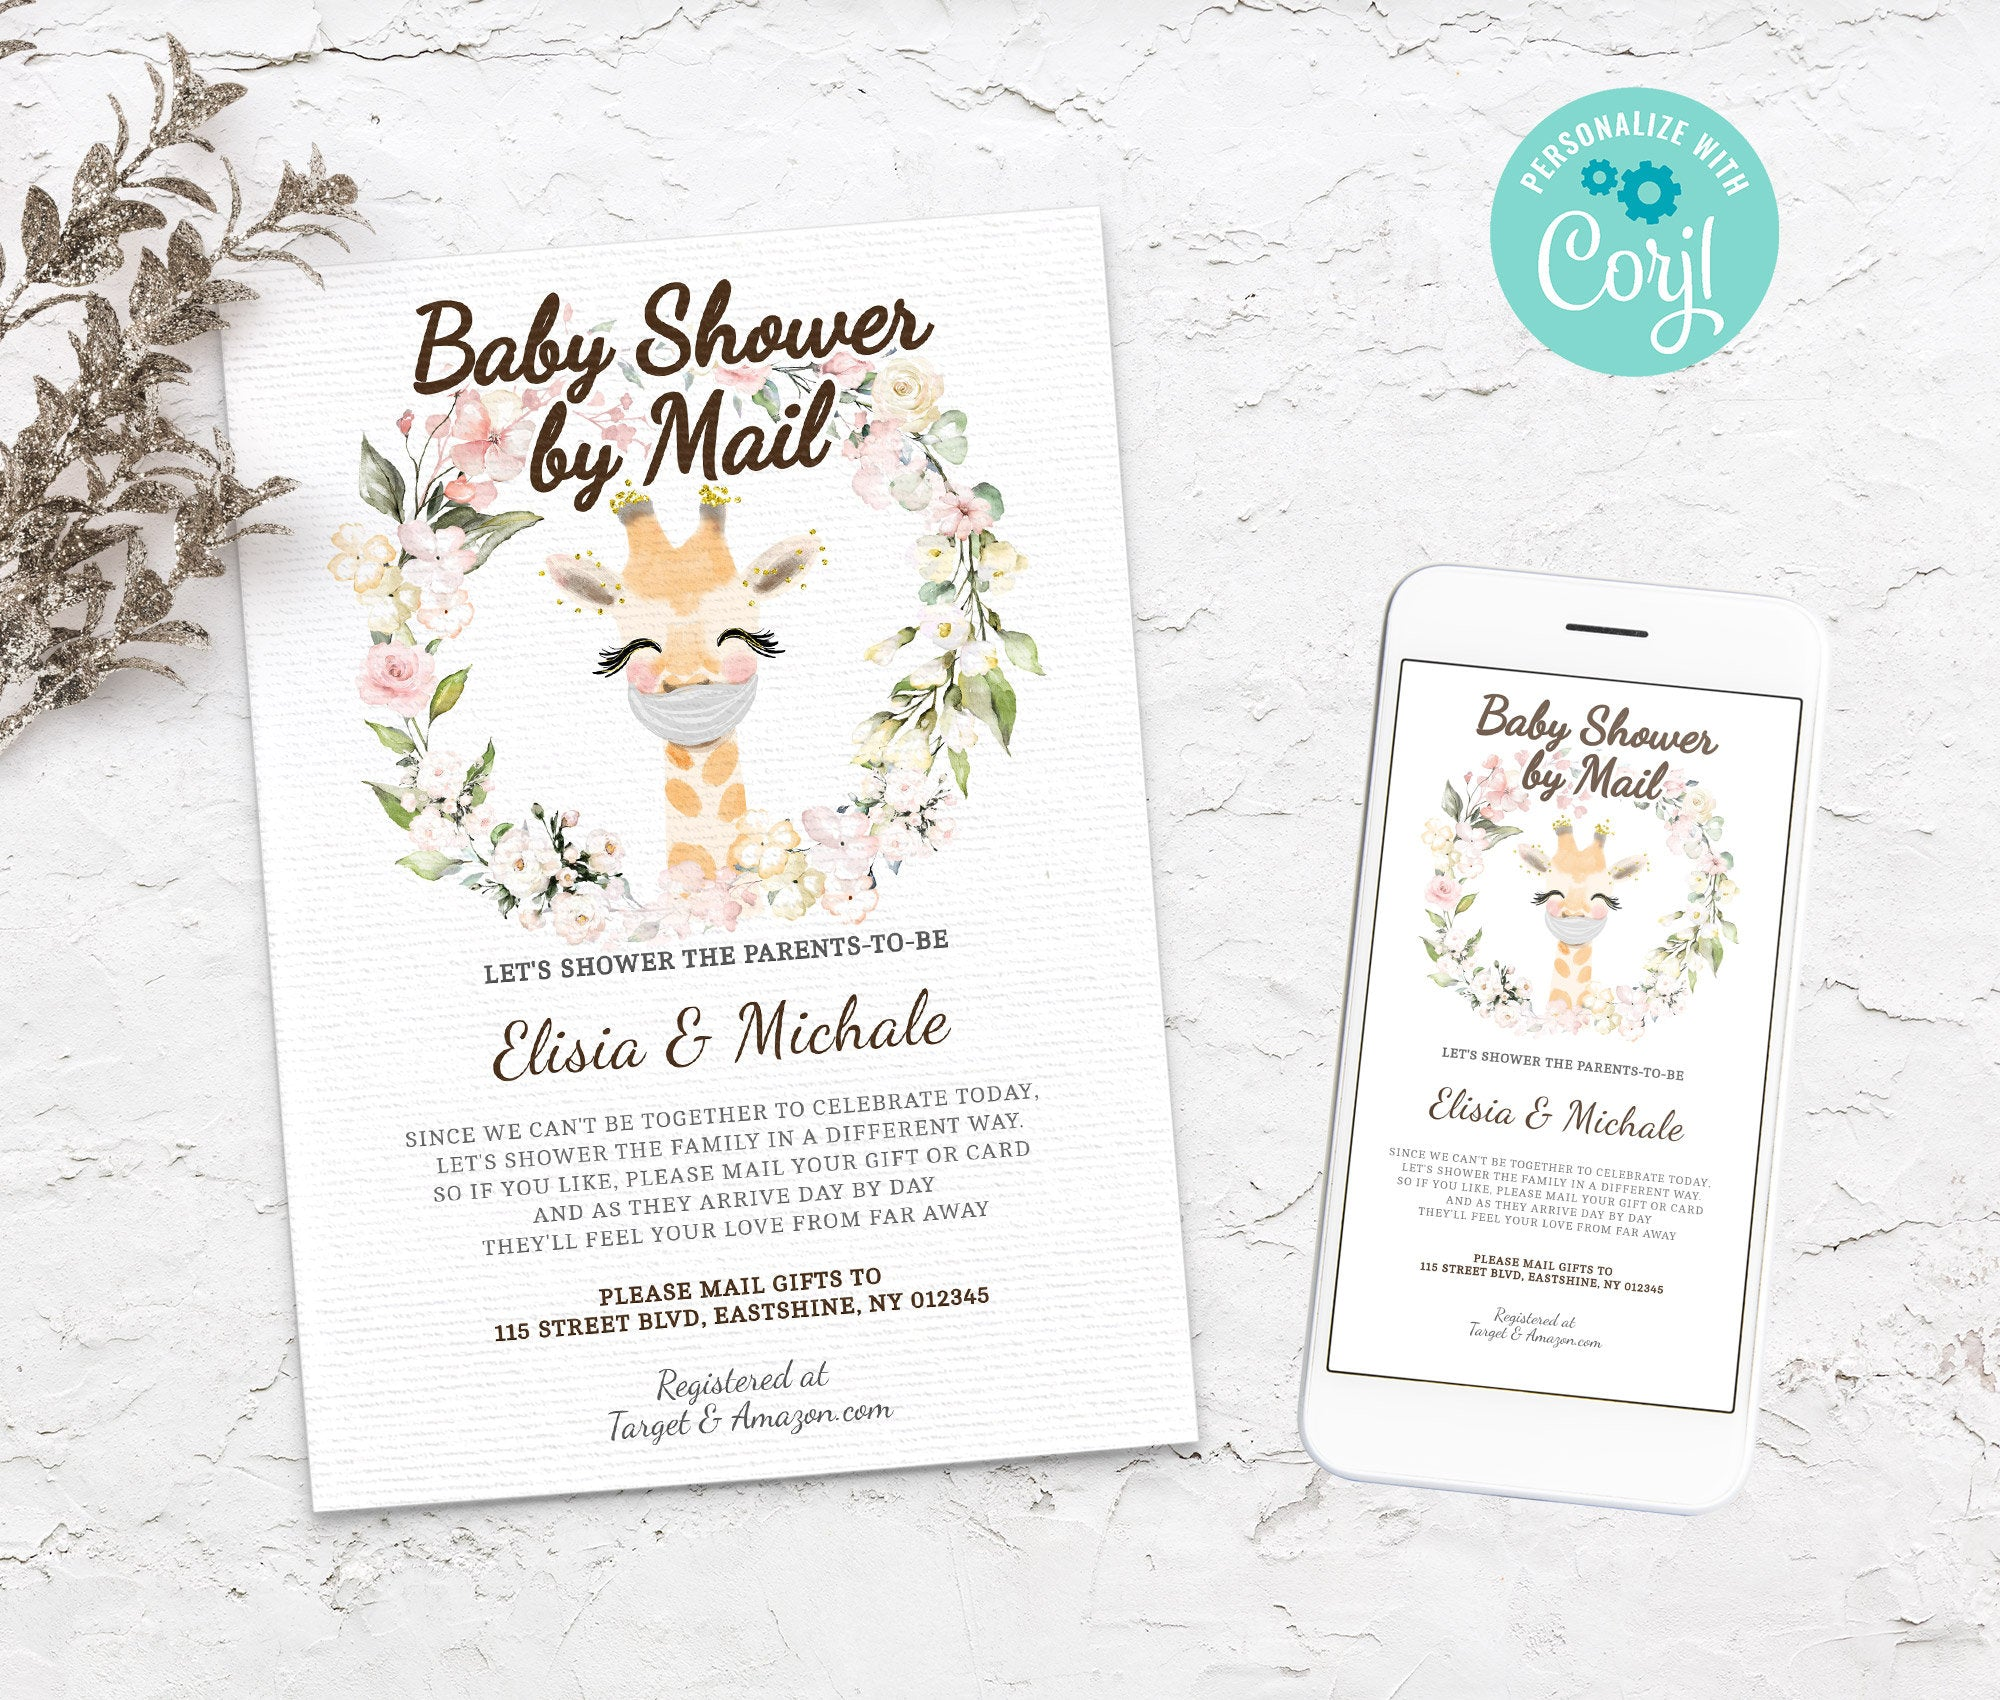 Baby Shower by Mail Giraffe Template - Baby shower invitation - Shower by Mail, Shower invite,  Editable Text, Instant Download,3614 BS3601